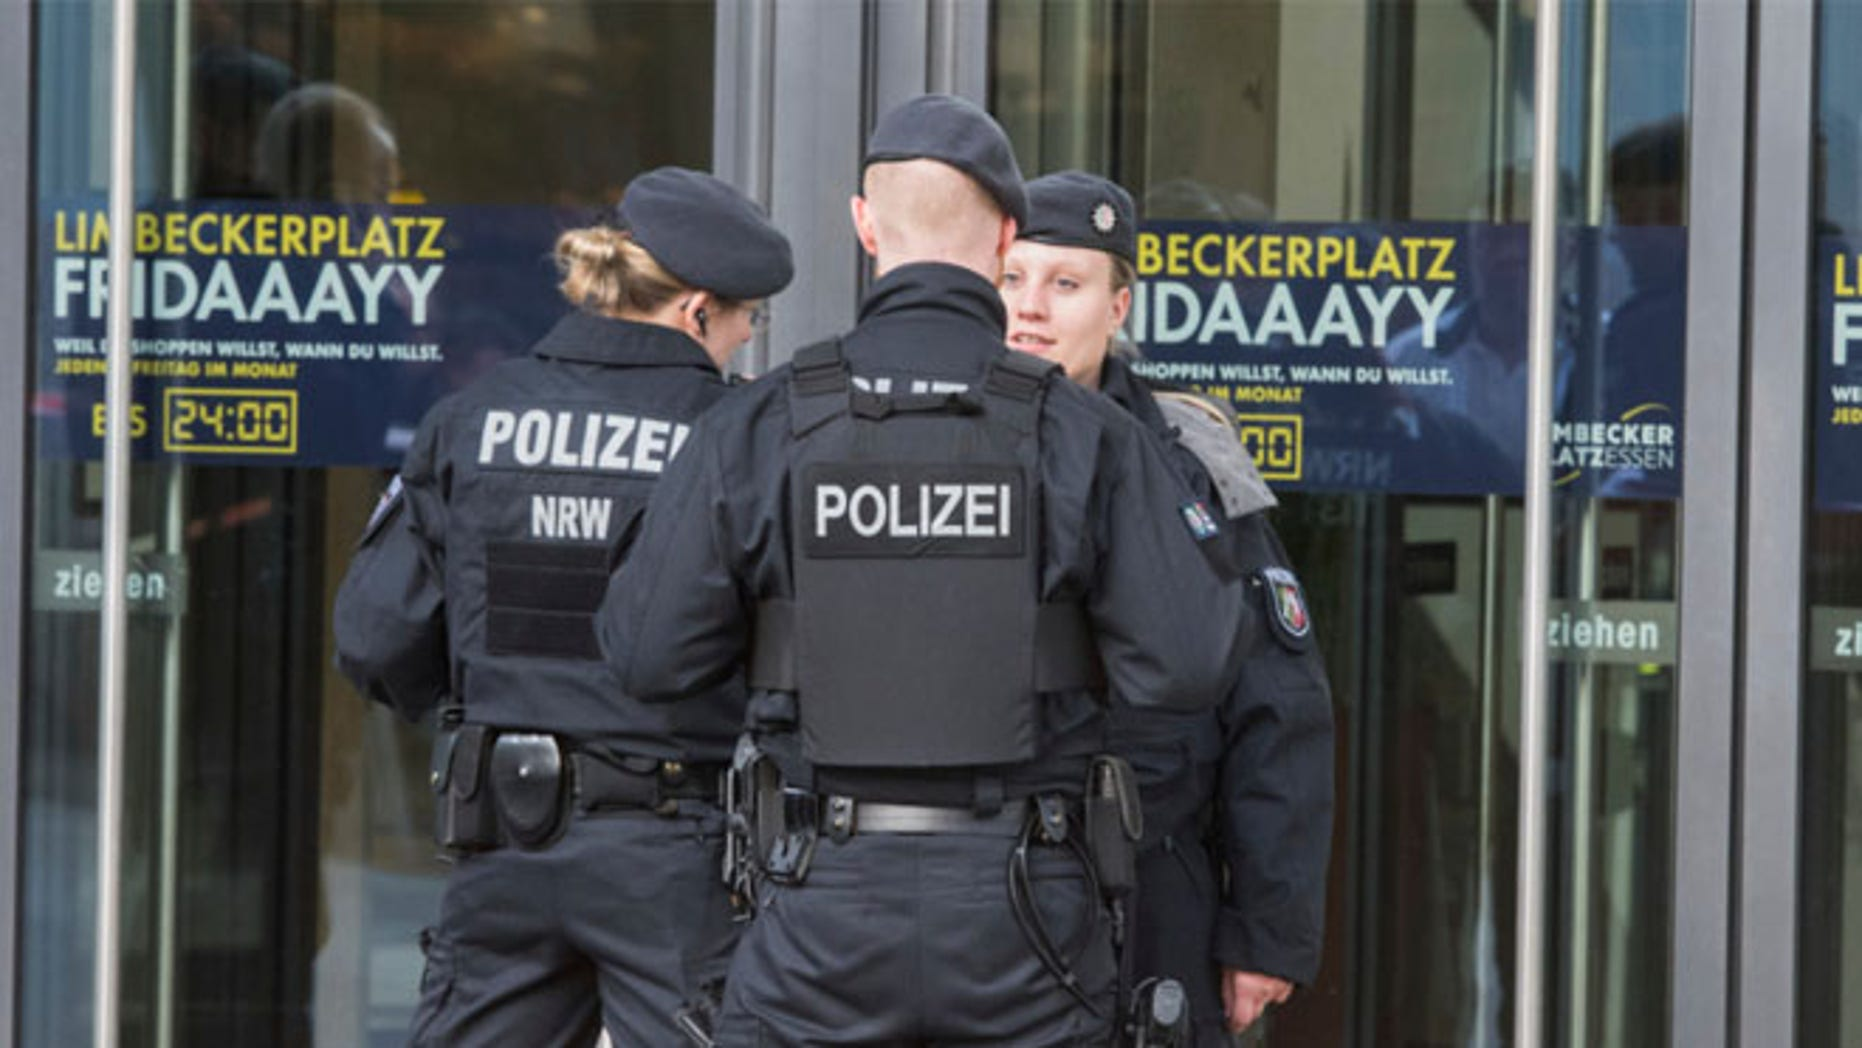 MARCH 11: Police guard in front of a shopping mall in Essen, Germany